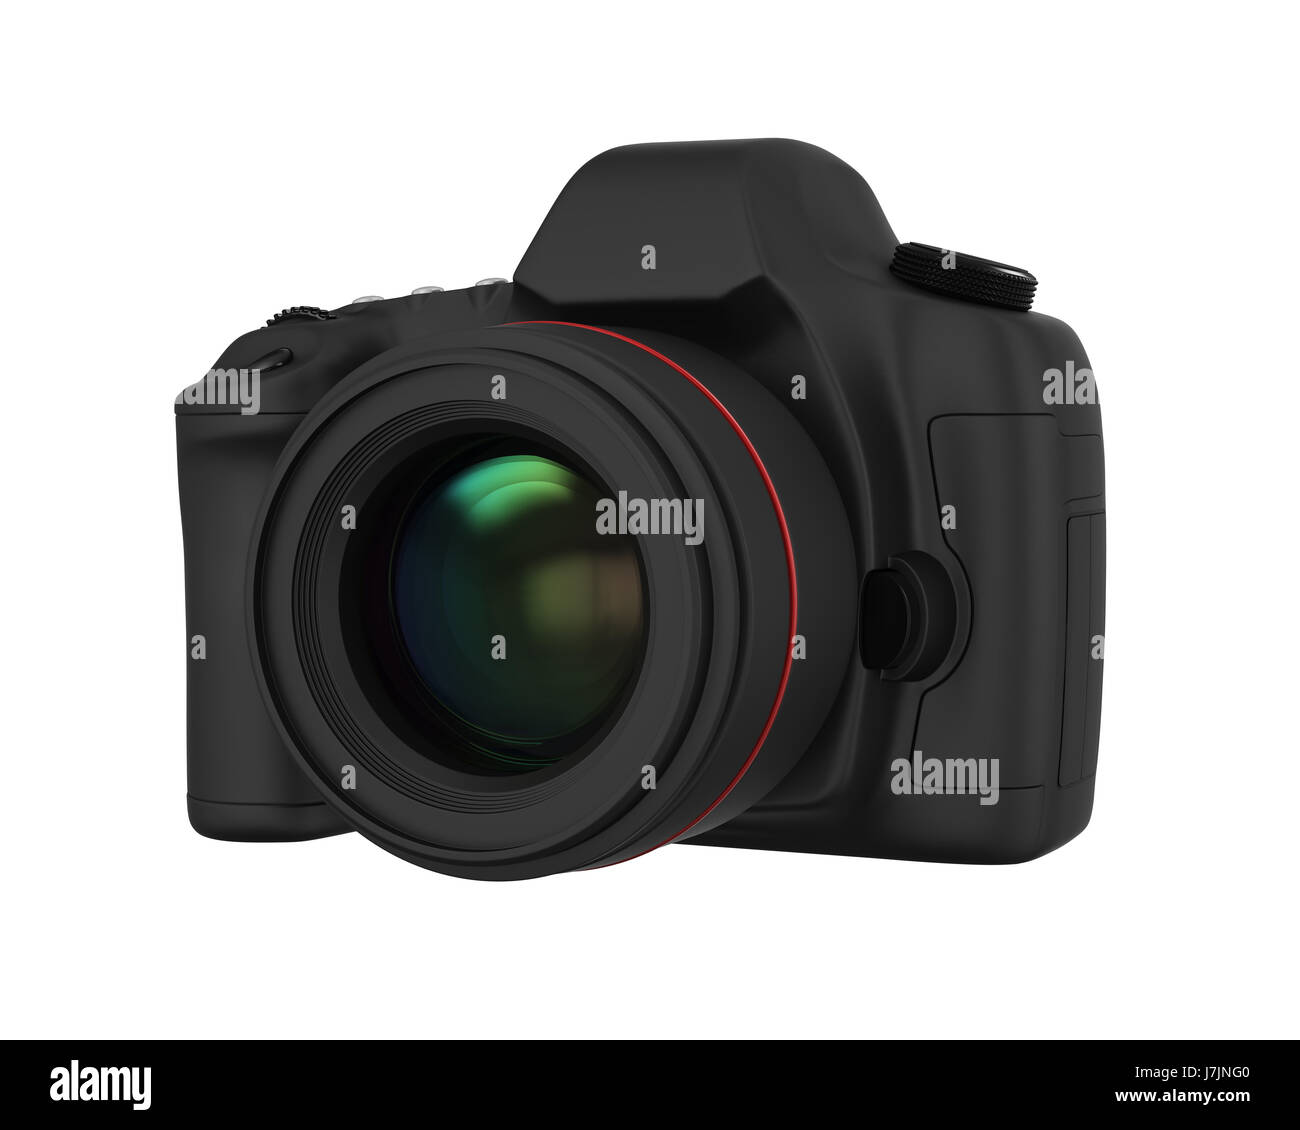 Digital SLR Camera Isolated - Stock Image